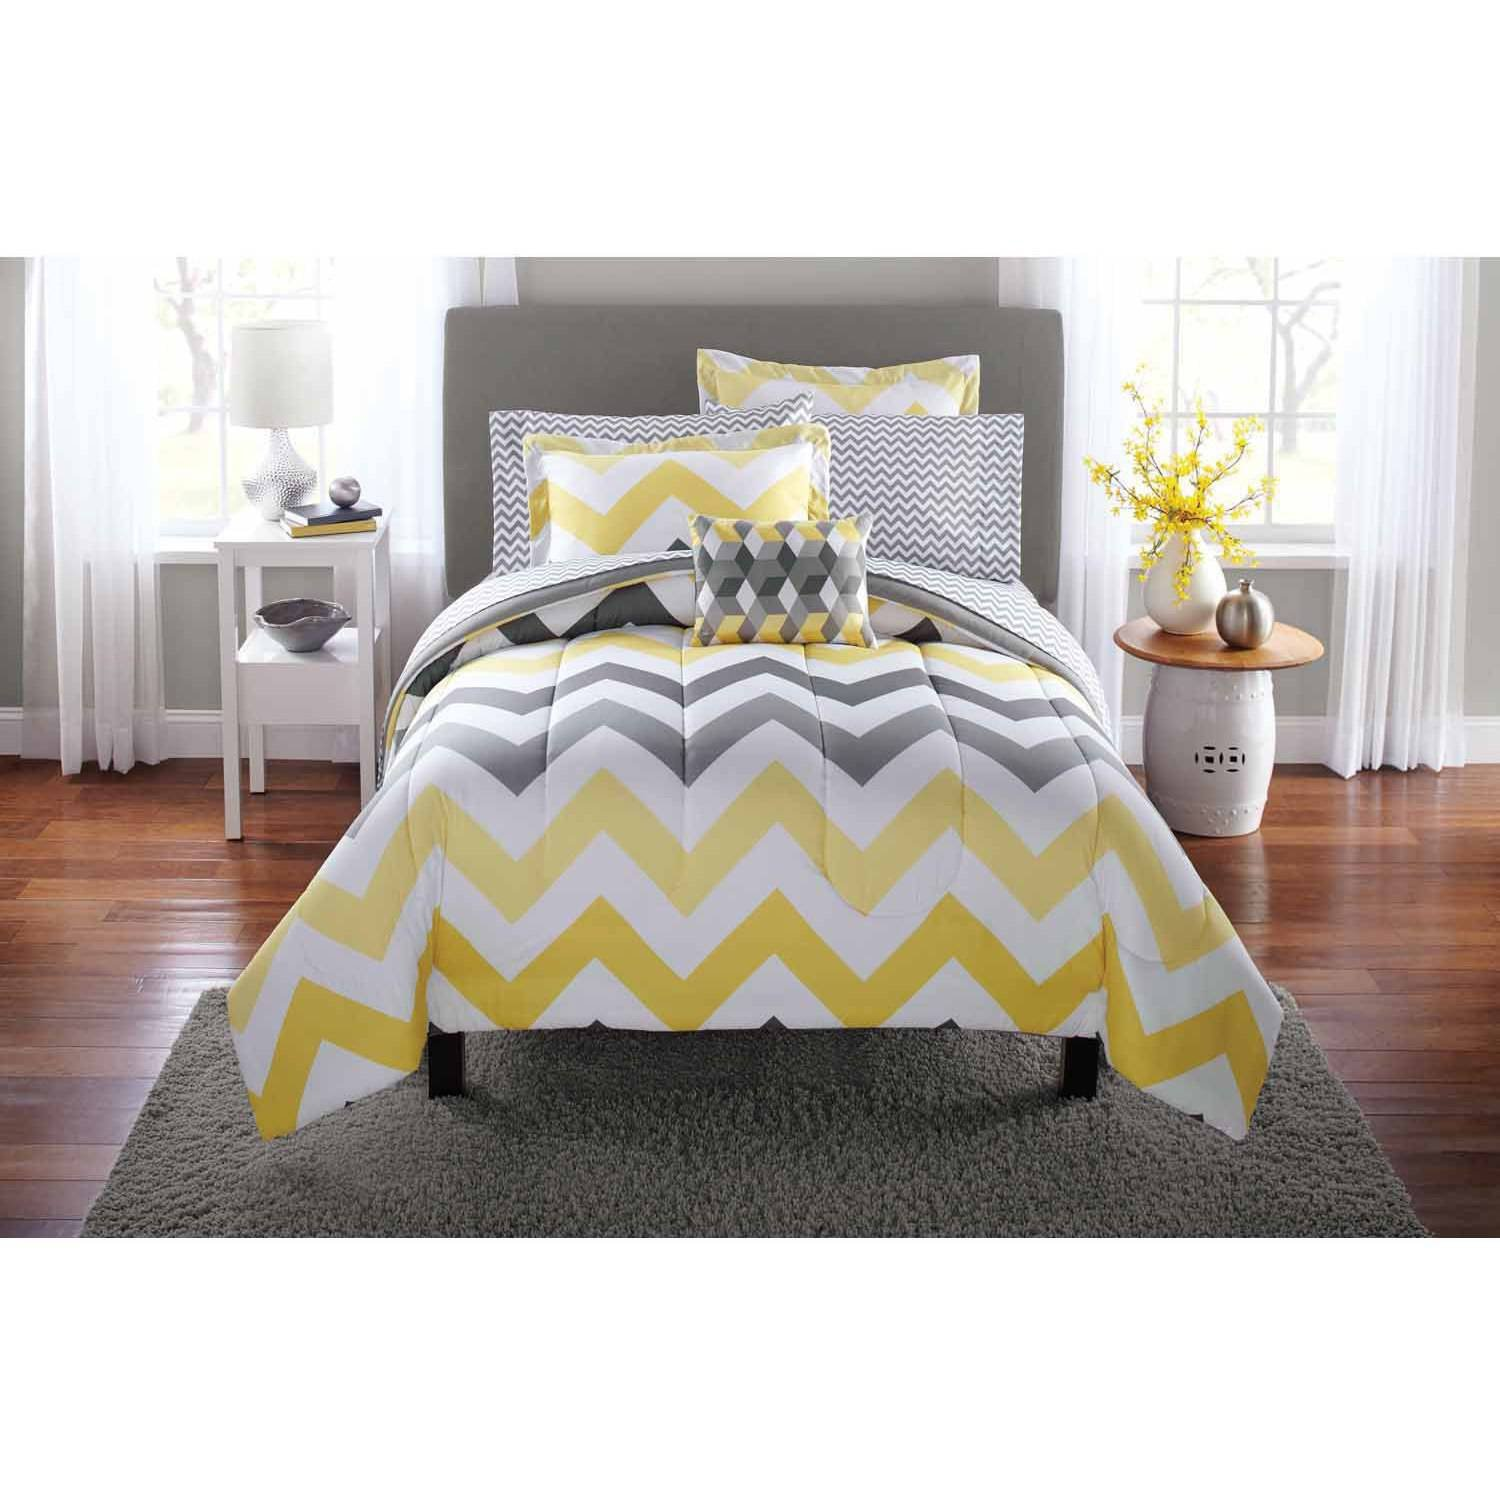 Mainstays Yellow Grey Chevron Bed in a Bag Bedding Comforter Set, Queen